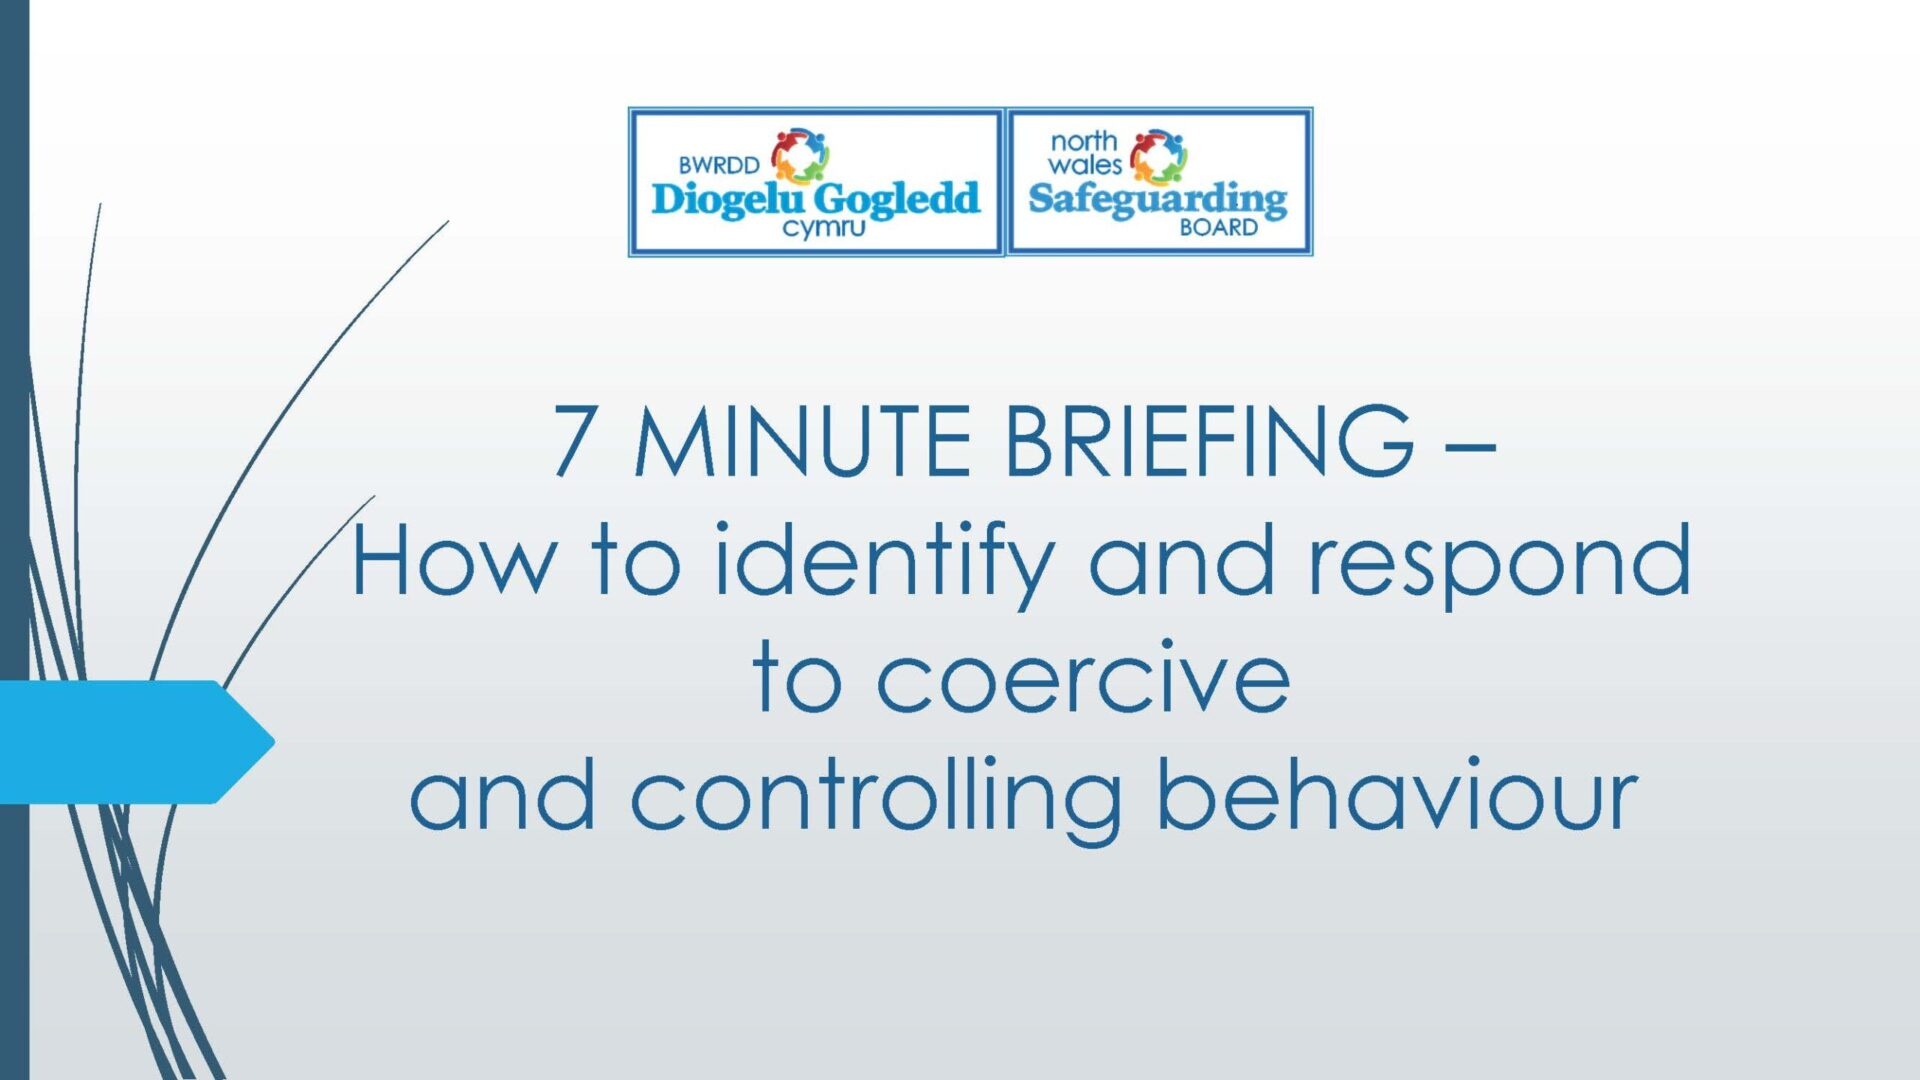 How to identify and respond to coercive and controlling behaviour